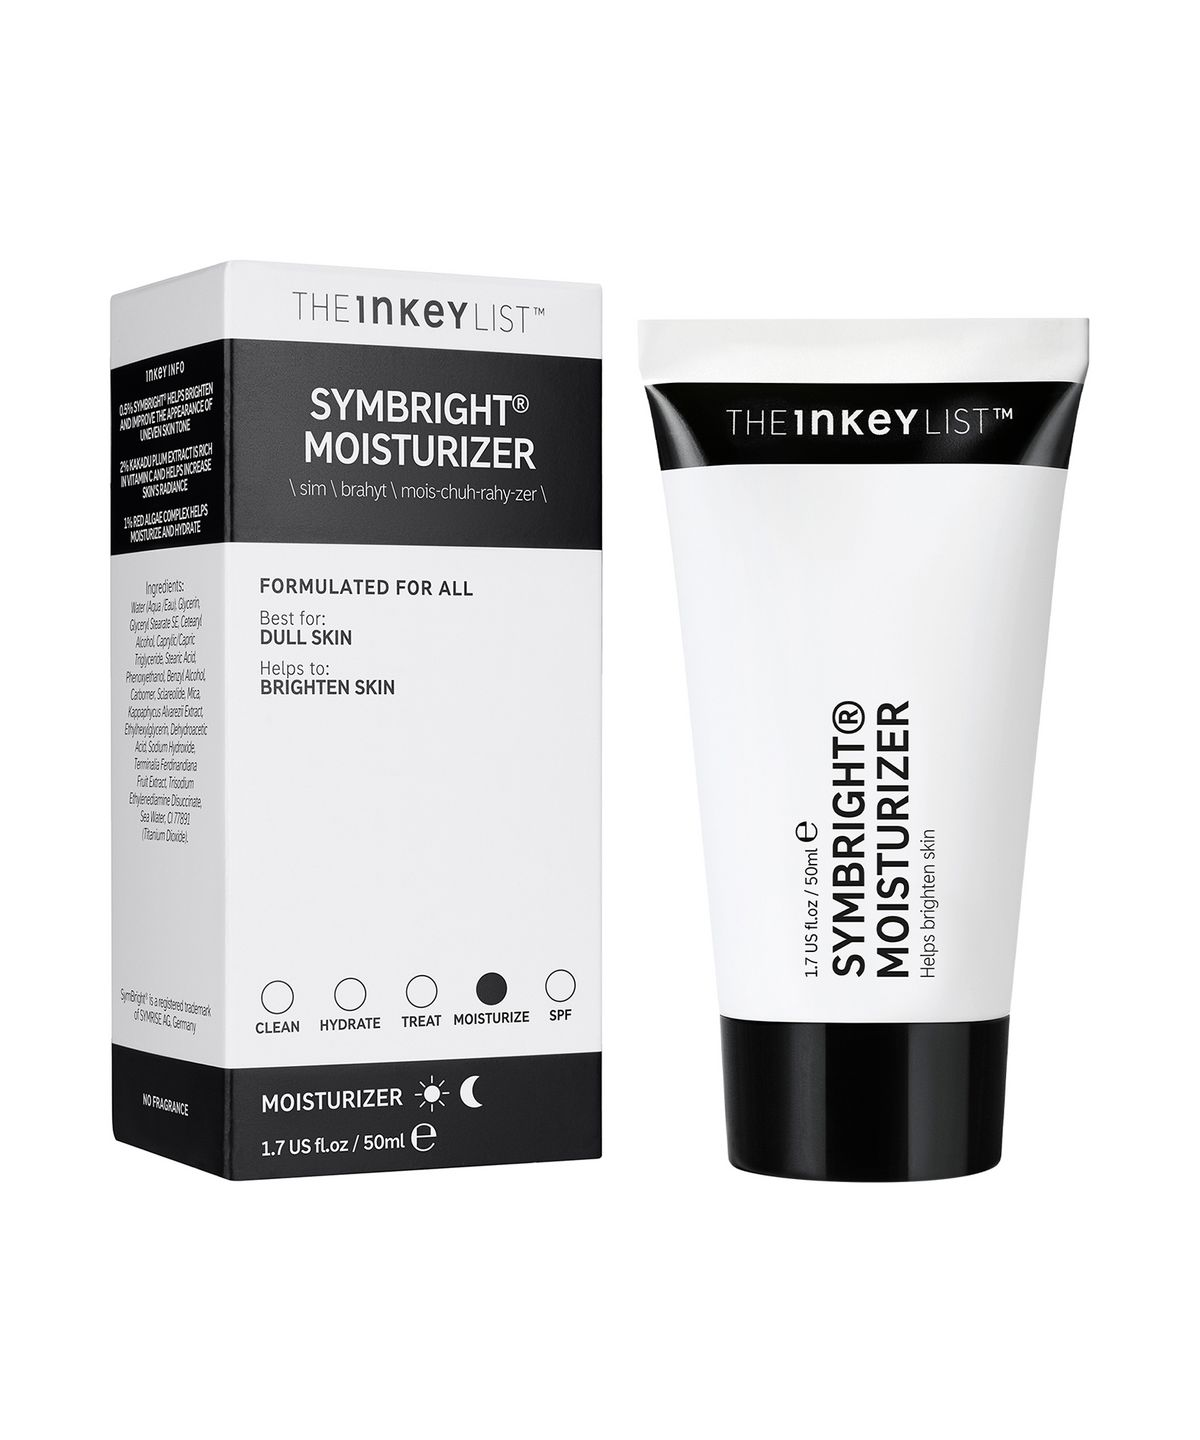 The Inkey List Symbright Moisturizer